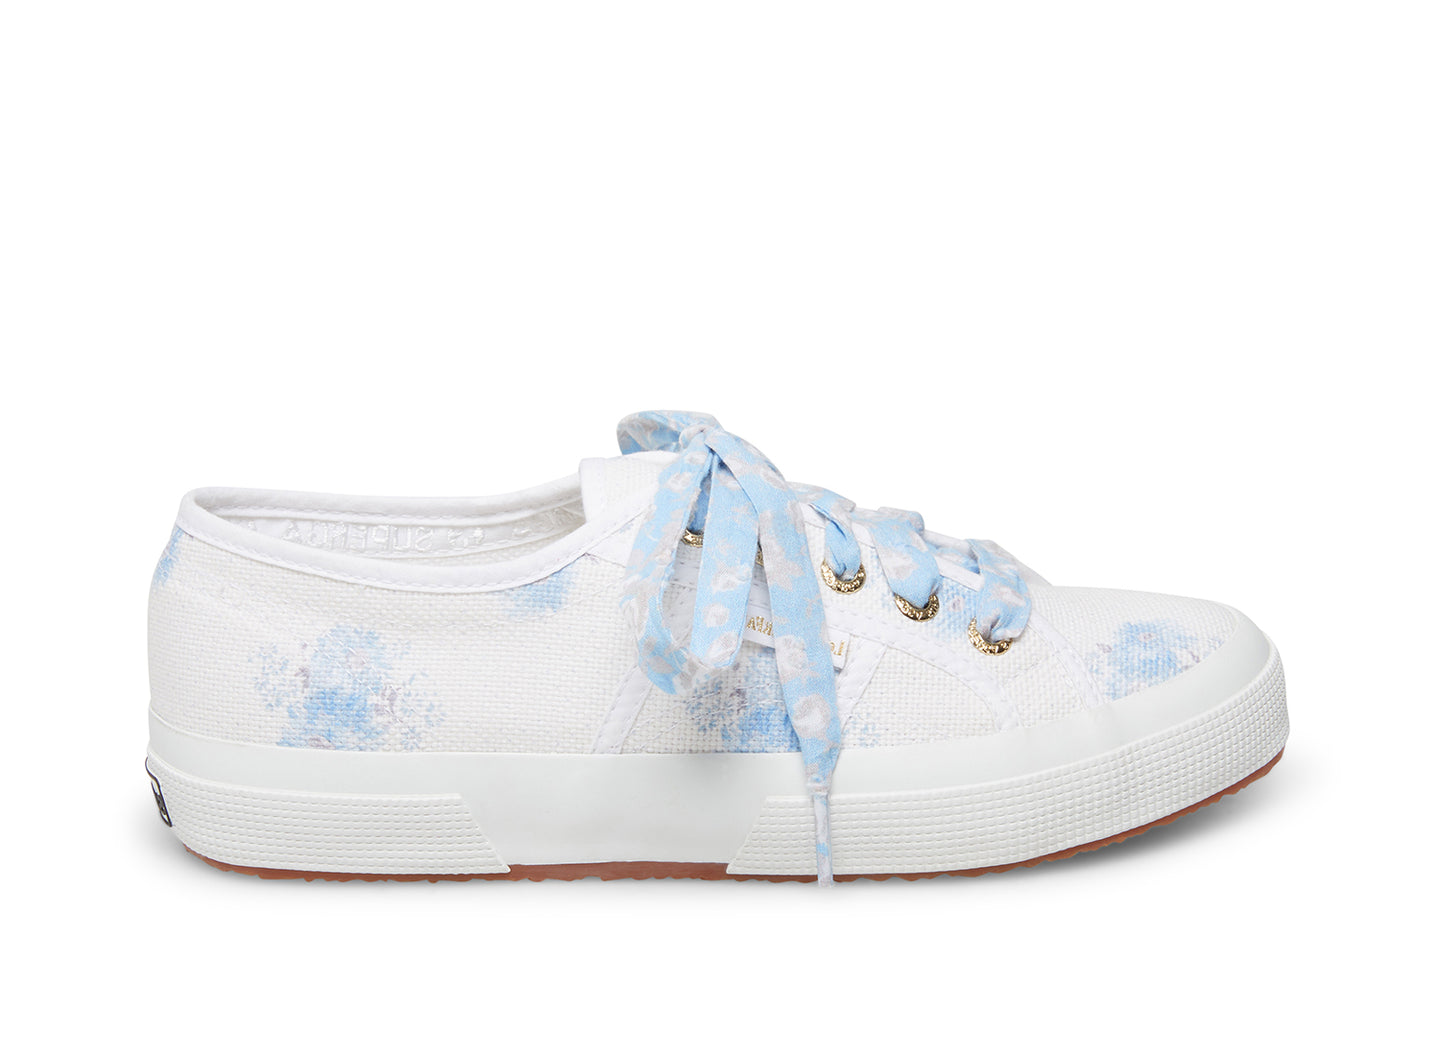 2750 FANCOTW WHITE BABY BLUE - LoveShackFancy 2020